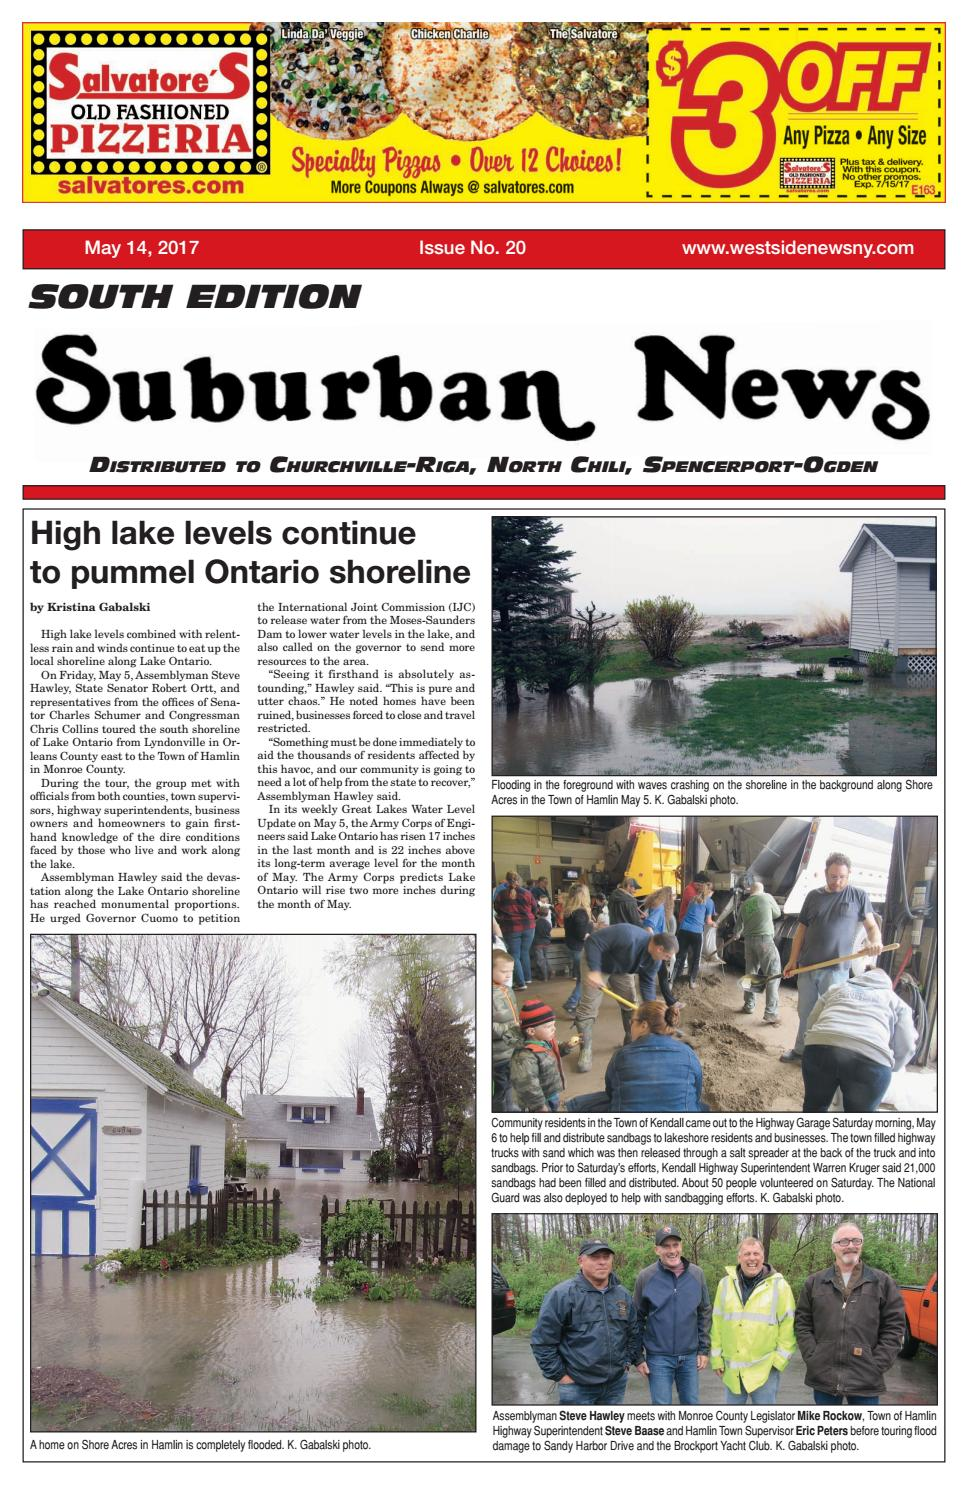 Suburban News South Edition  May 14, 2017 By Westside News Inc  Issuu